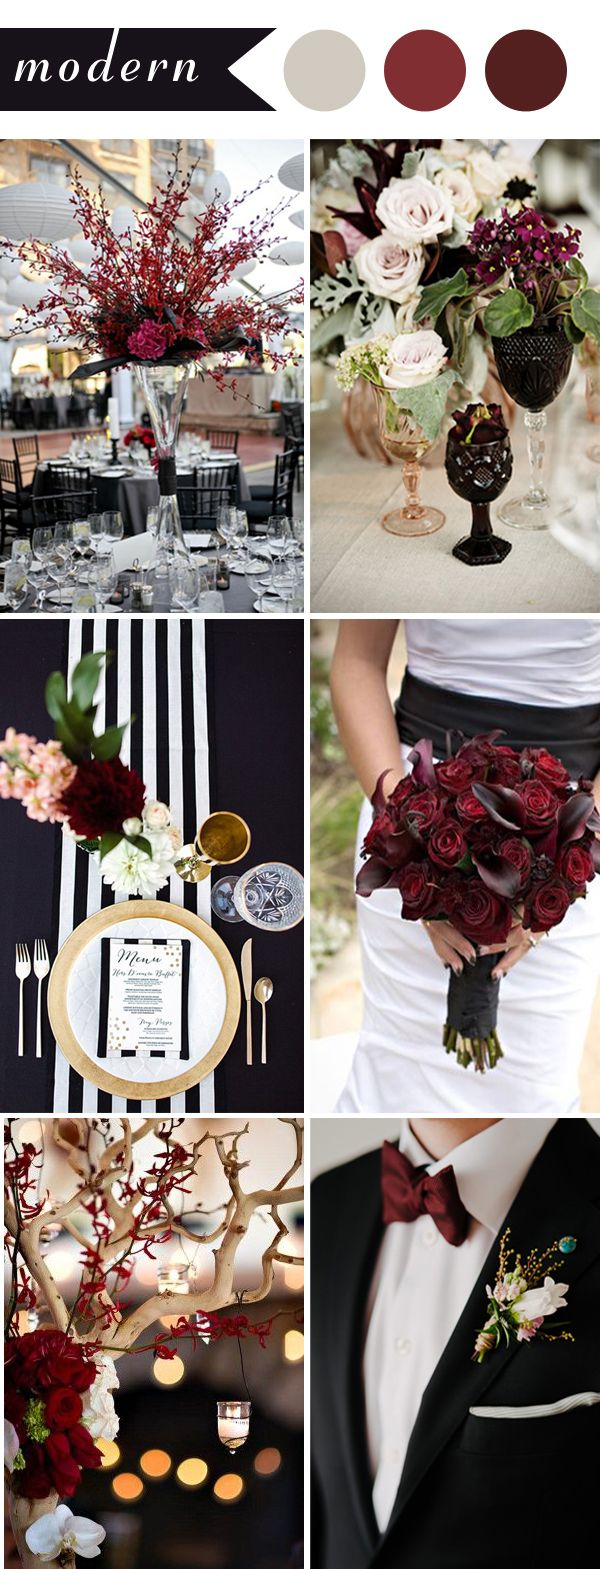 Wedding decoration ideas red and white  Perfect Burgundy Wedding Themes Ideas for   Modern wedding